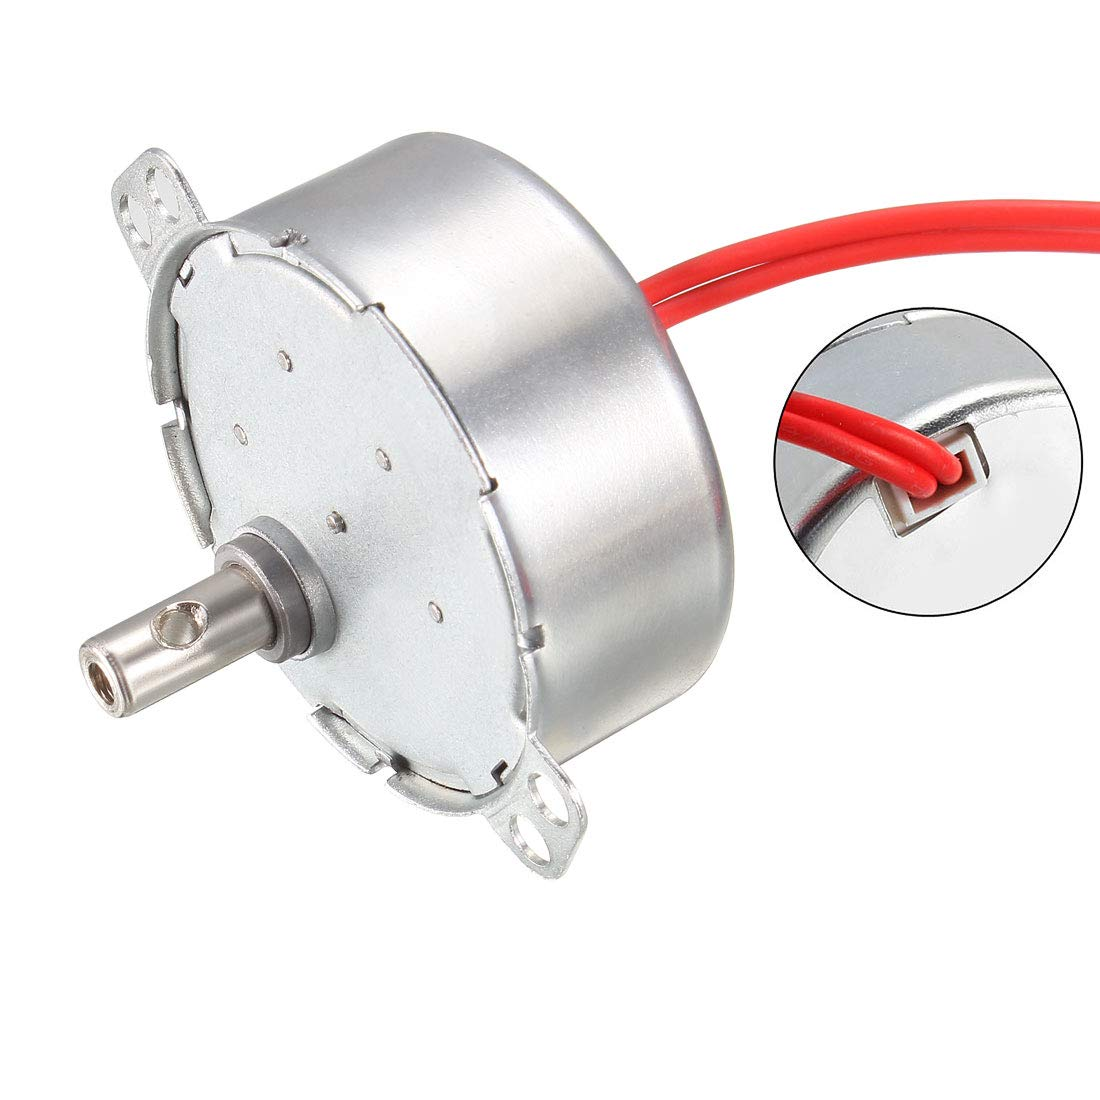 uxcell Electric Synchronous Synchron Motor Turntable Motor AC 12V 50-60Hz CCW//CW 4W 30-36RPM